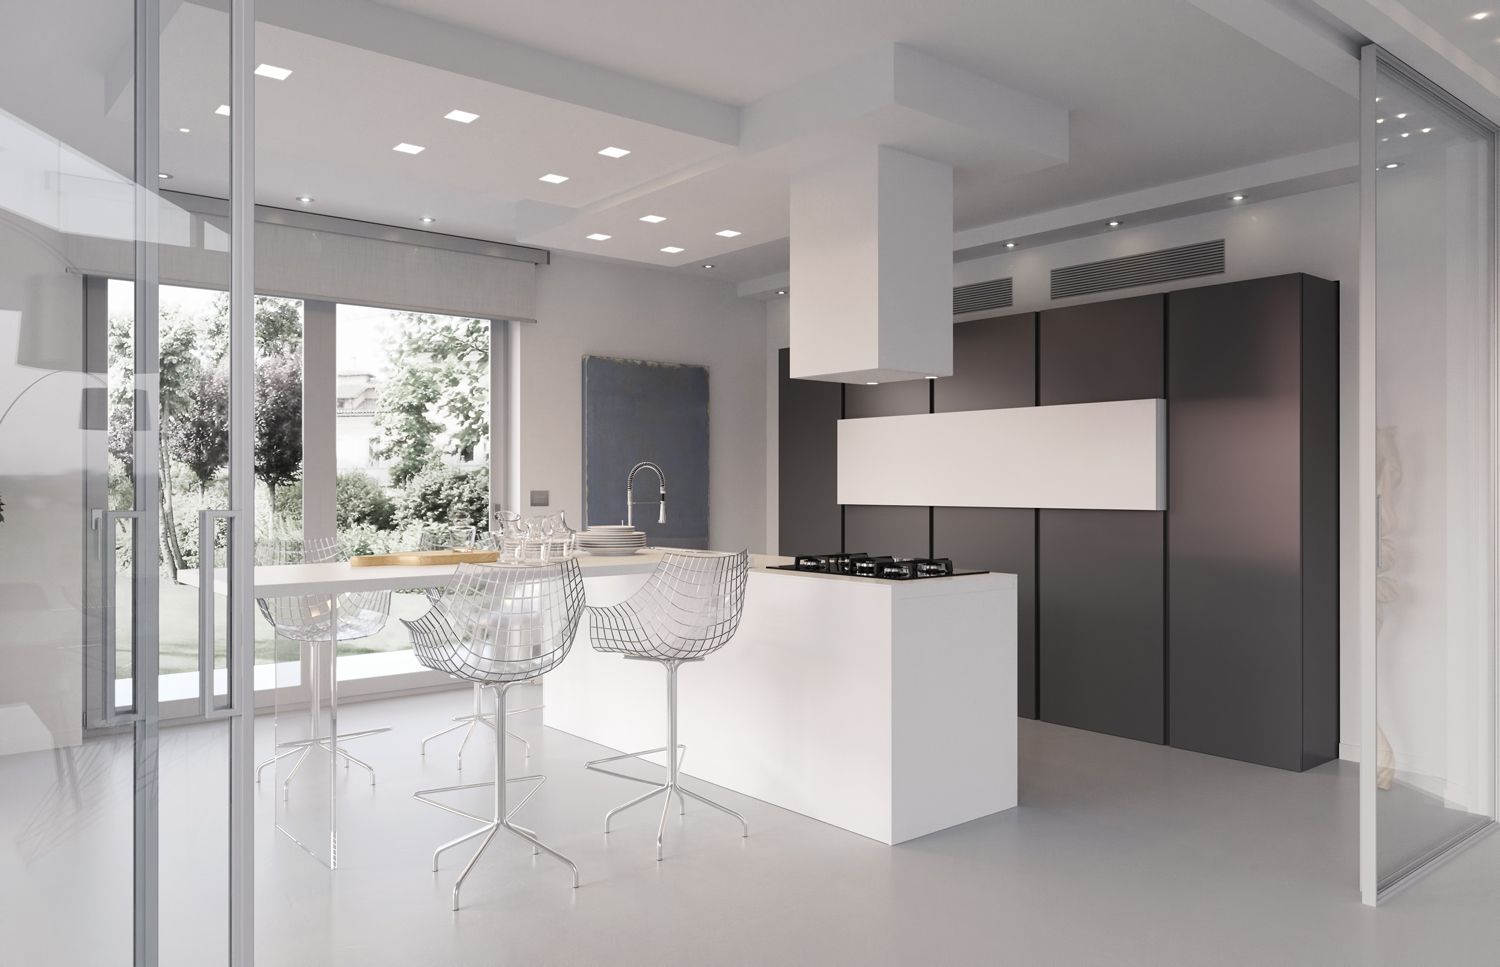 Cucine parma vendita cucine parma outlet cucine parma for Cucine on line outlet